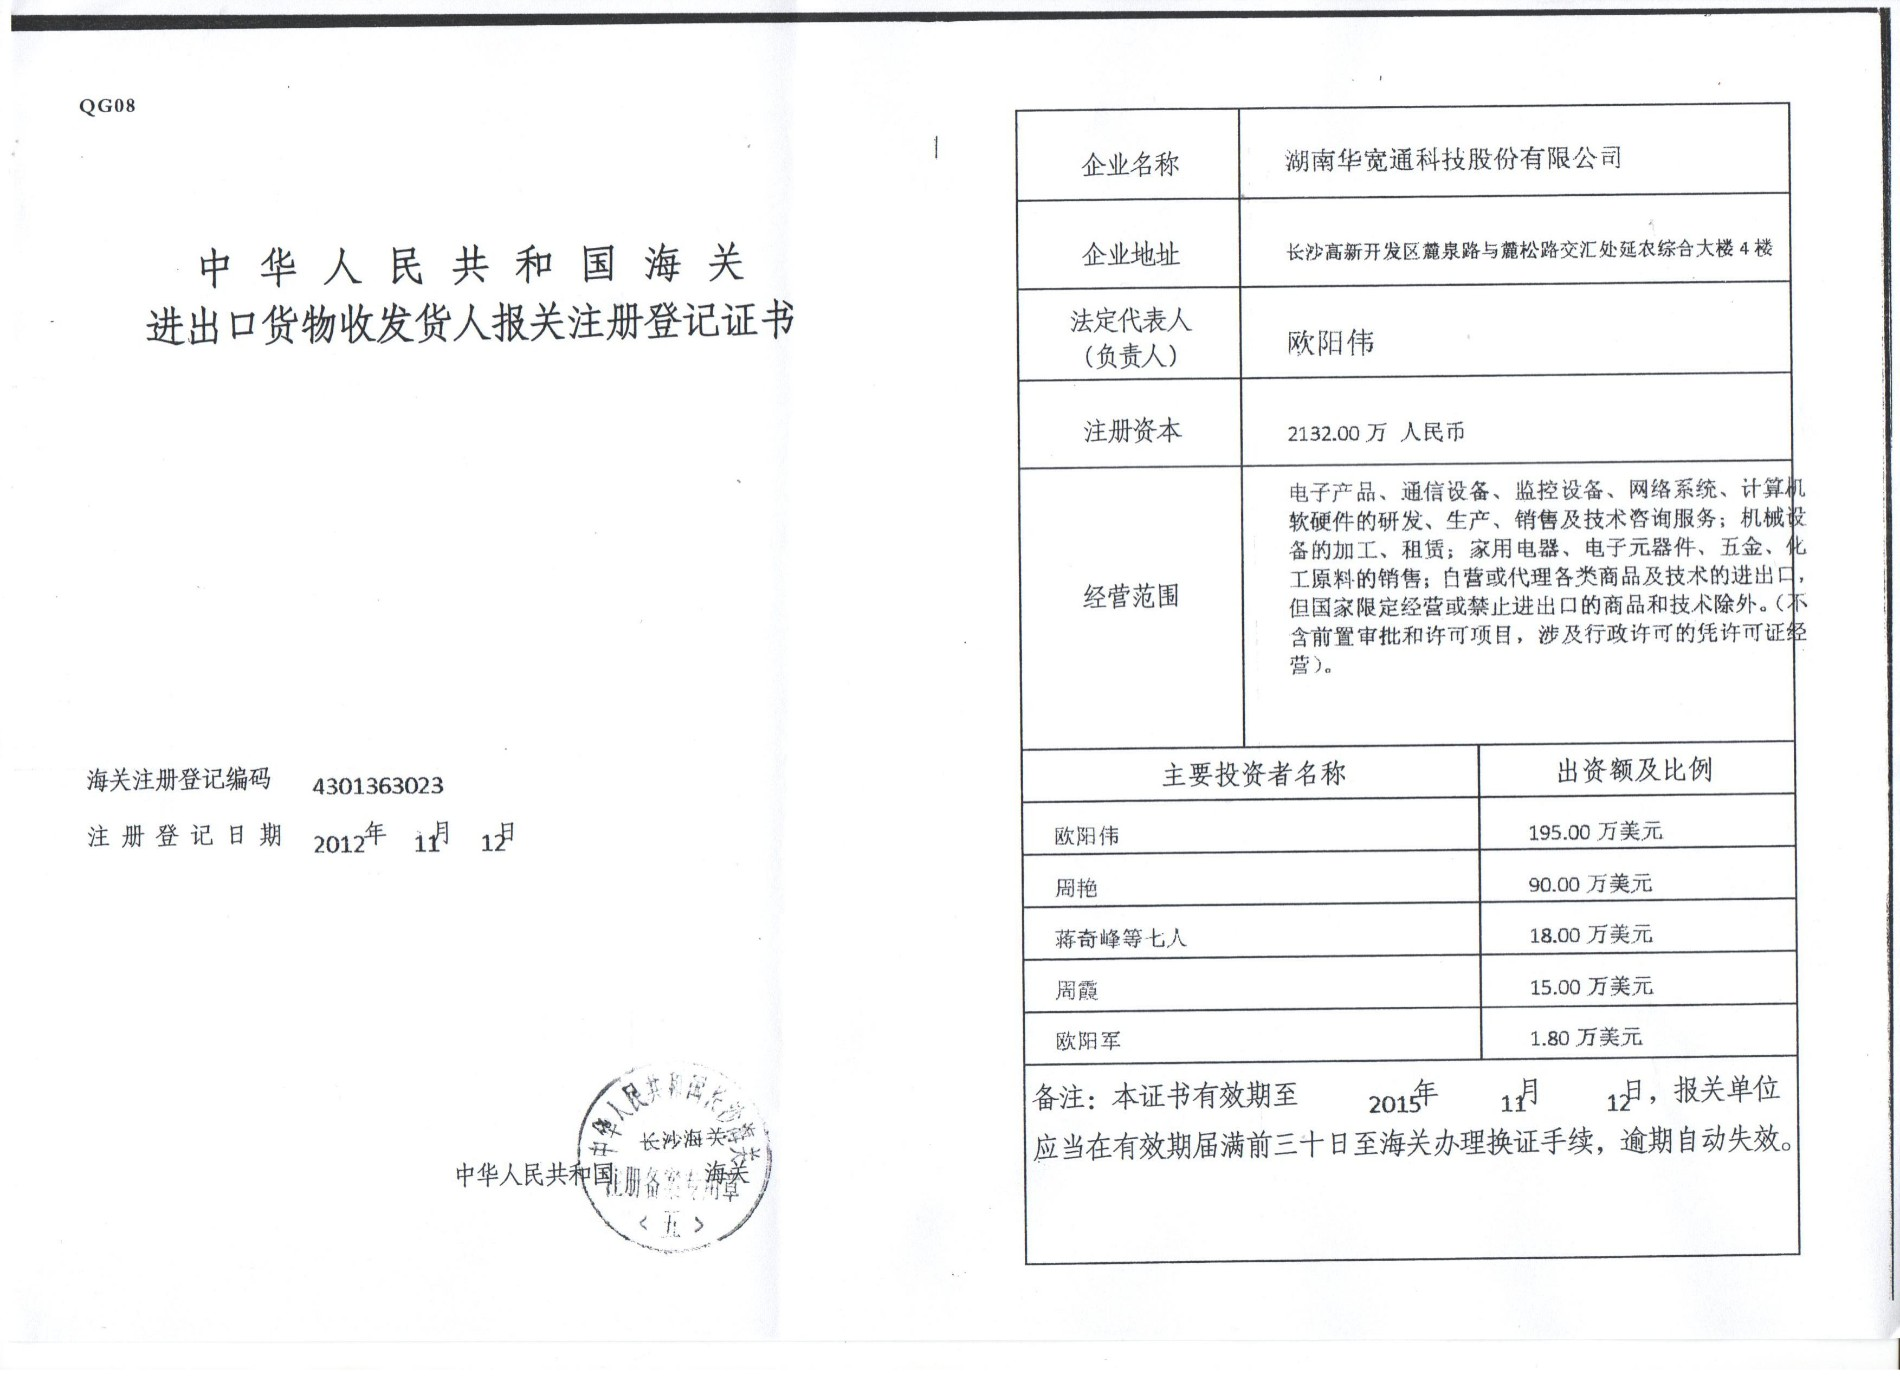 20131115 record registration form for foreign trade operators